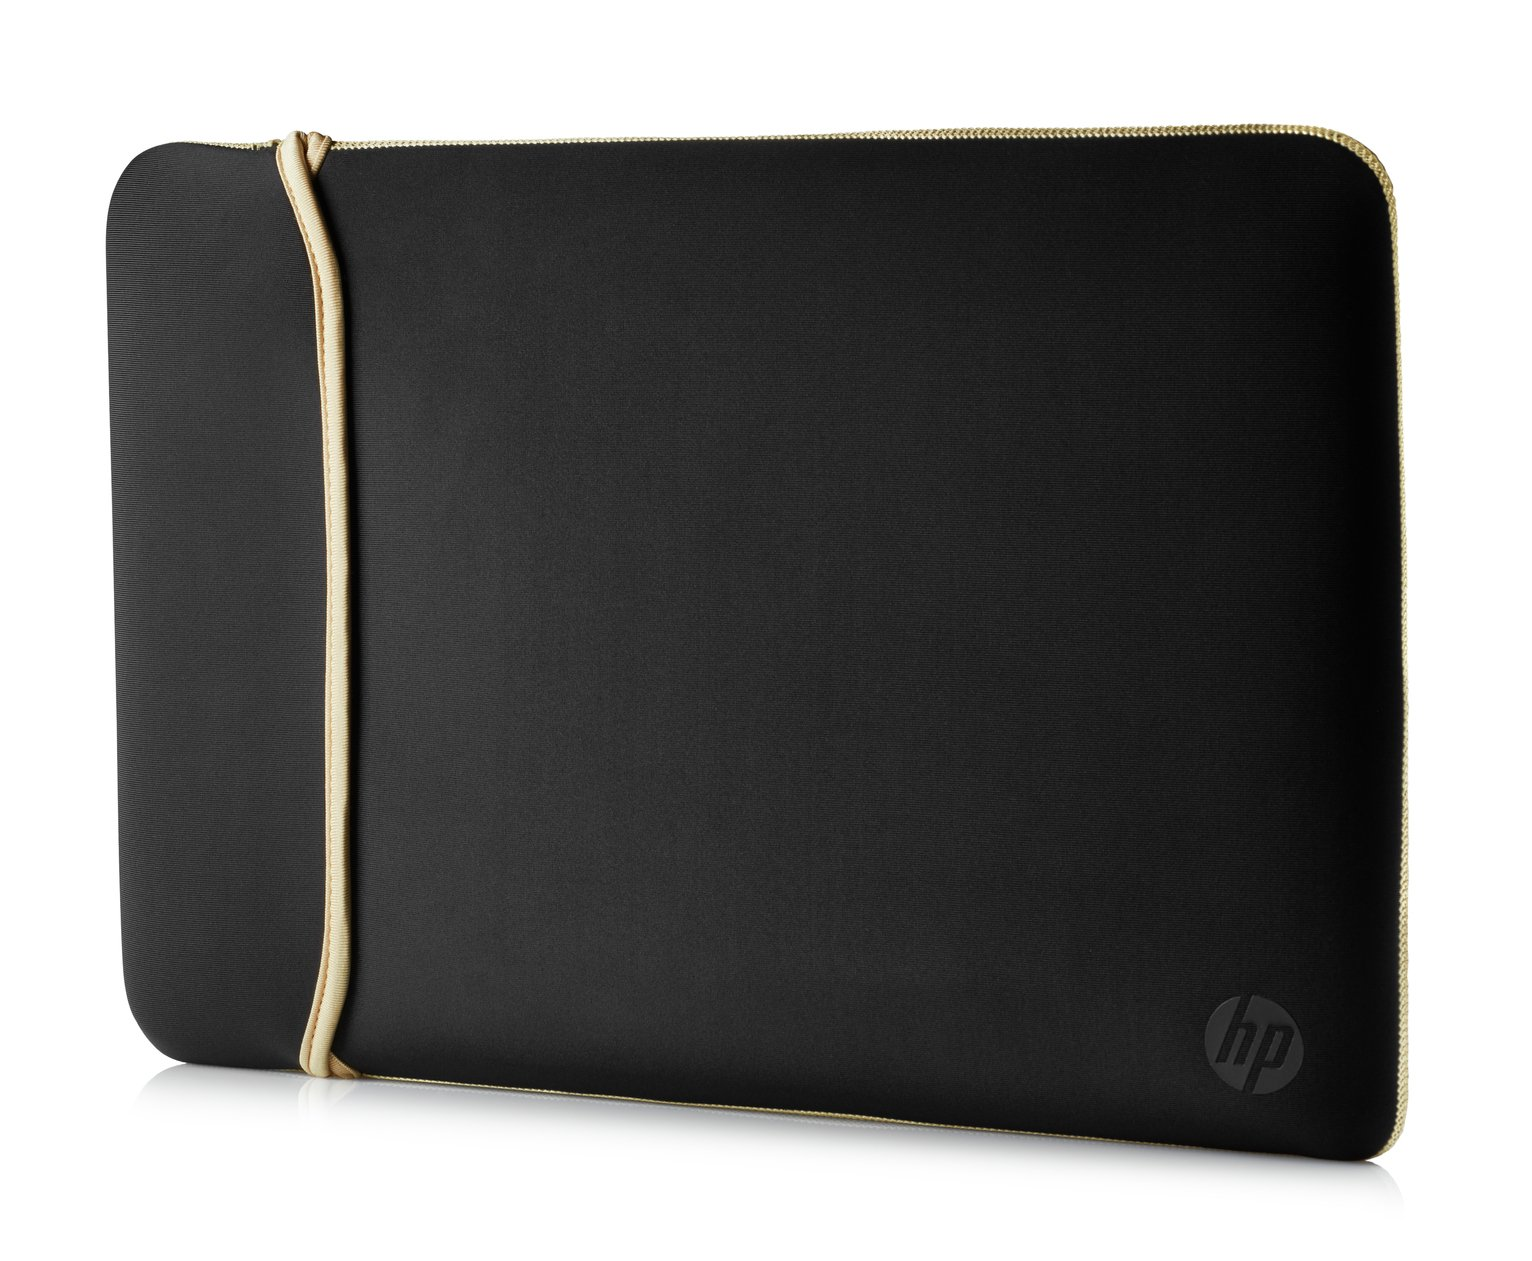 HP 14 Inch Reversible Laptop Sleeve - Gold & Black